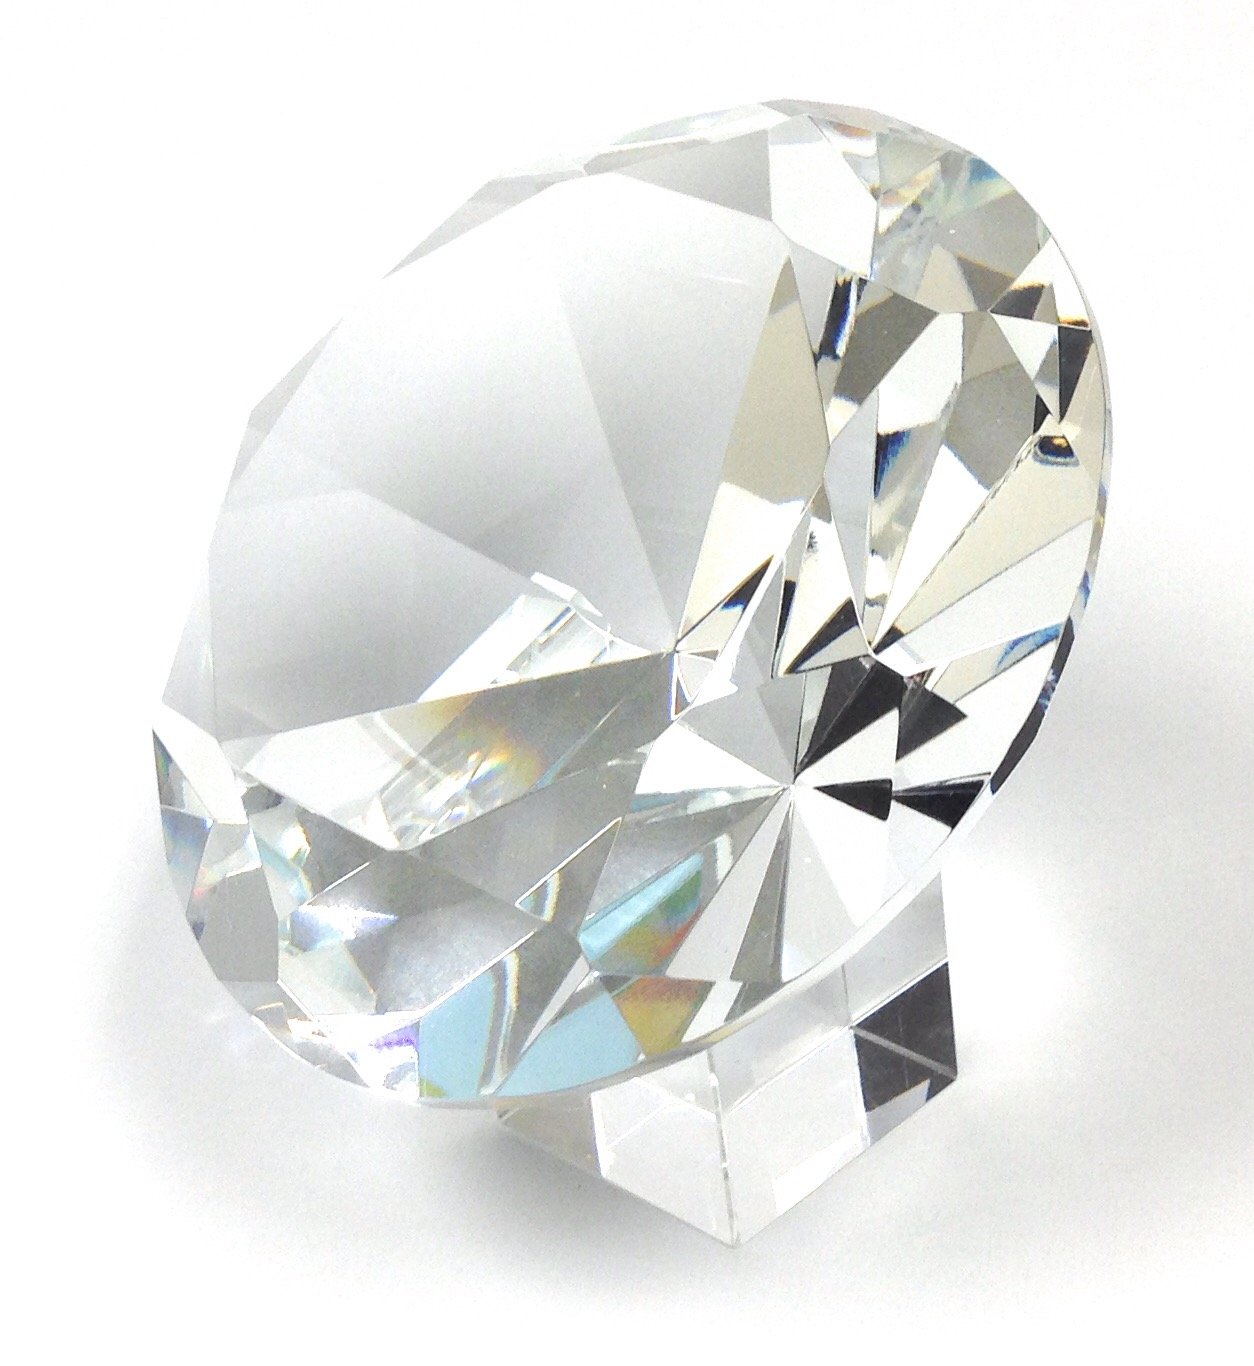 Amlong Crystal 120mm 5'' Crystal Diamond Jewel Paperweight With Gift Box